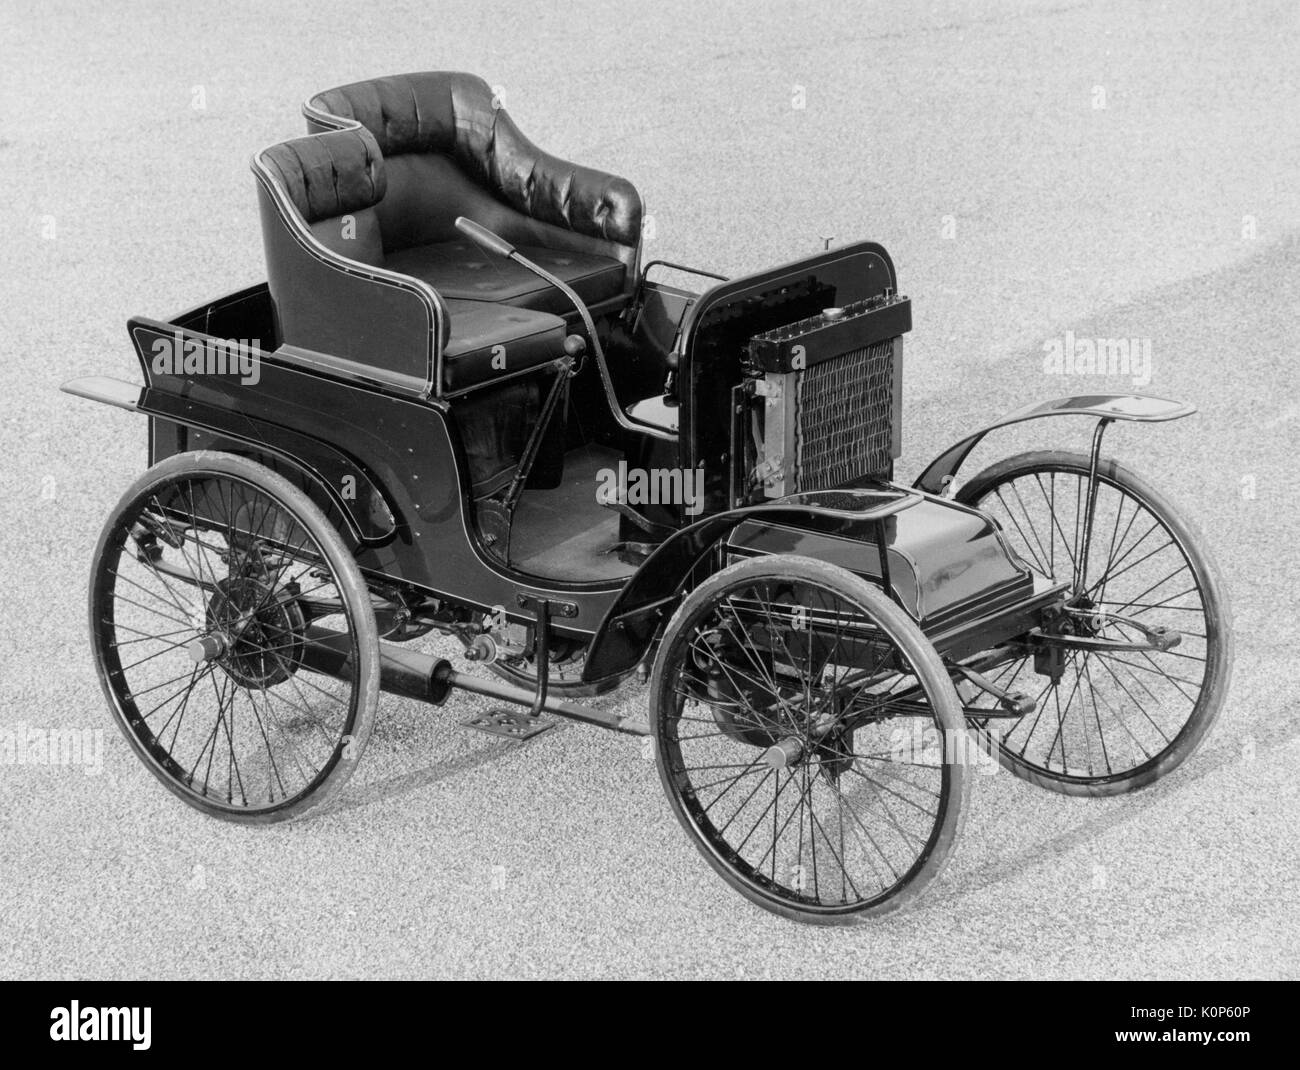 1899 Simms Welbeck - Stock Image